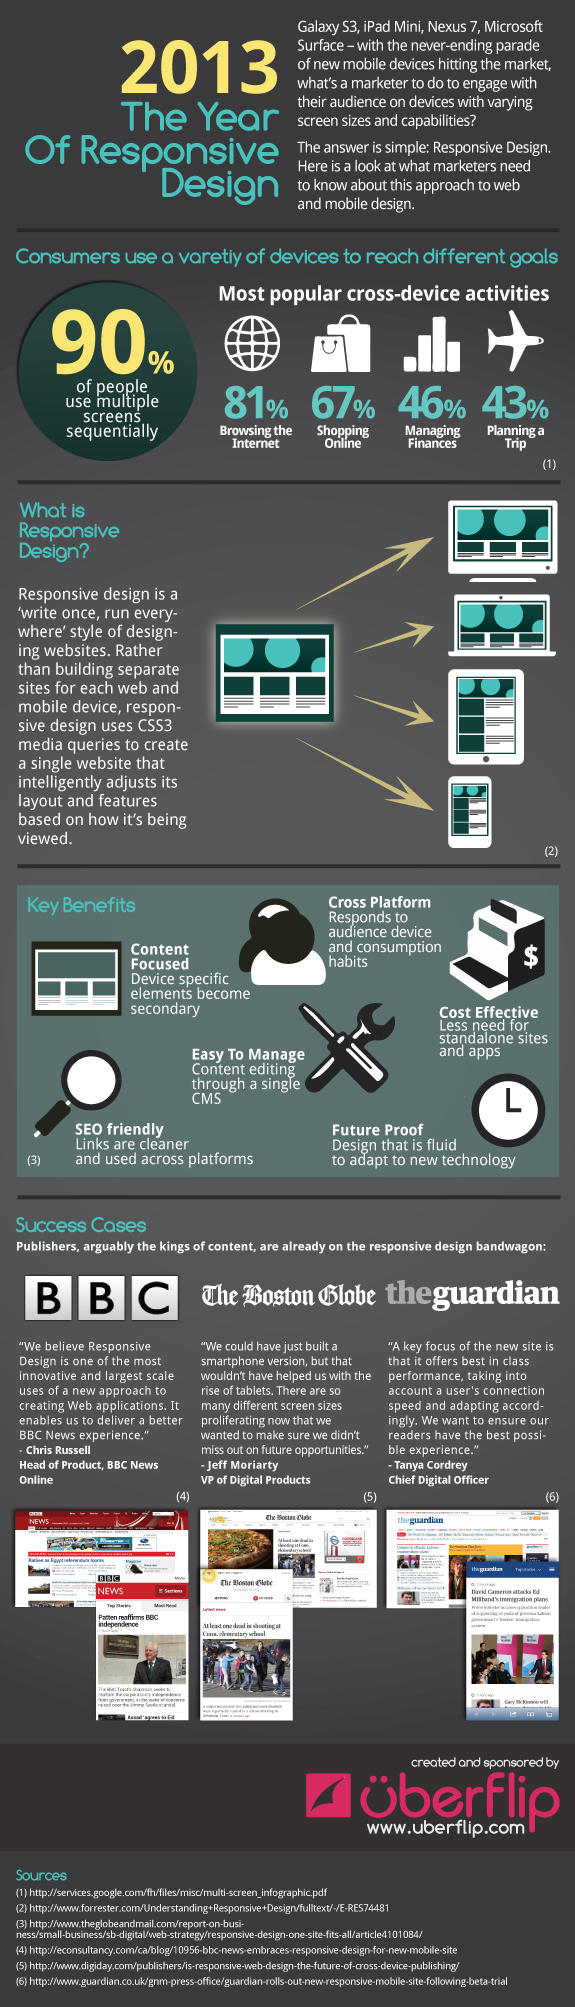 year-of-responsive-design-infographic